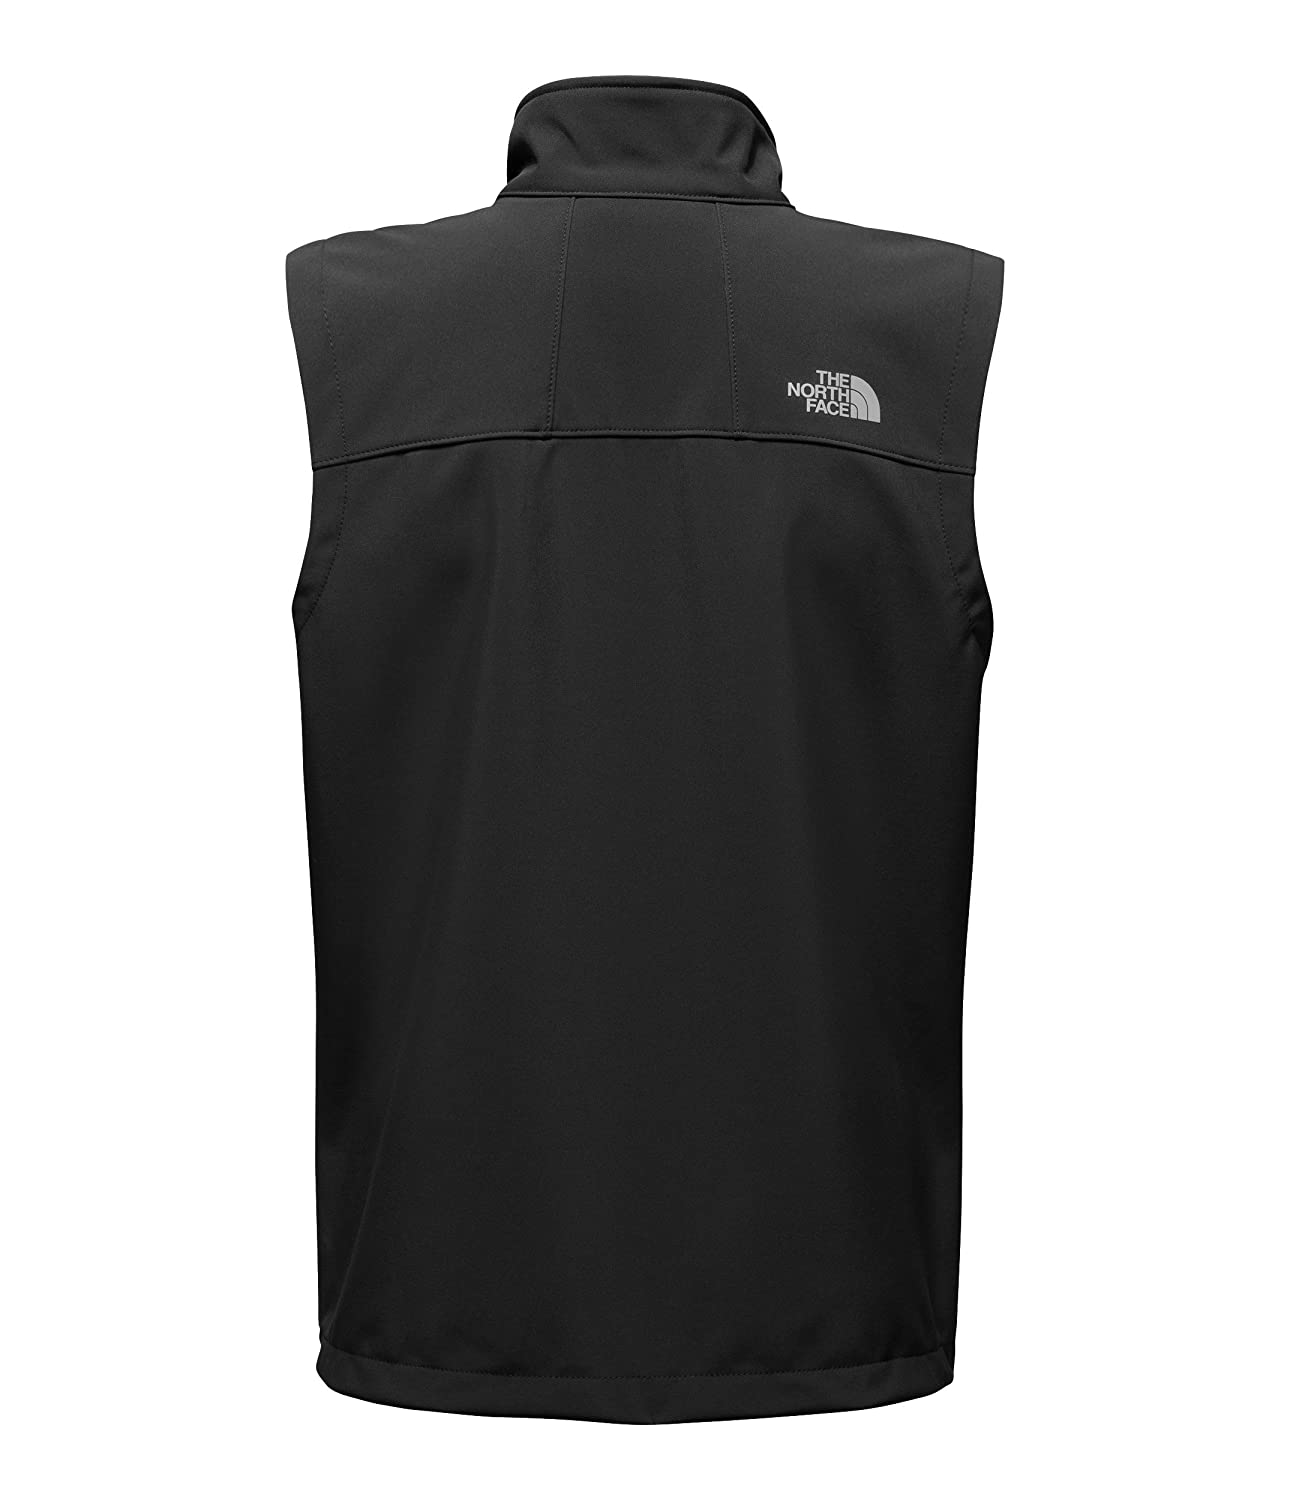 03a4f1ff69673 The North Face Men s Apex Bionic 2 Vest at Amazon Men s Clothing store